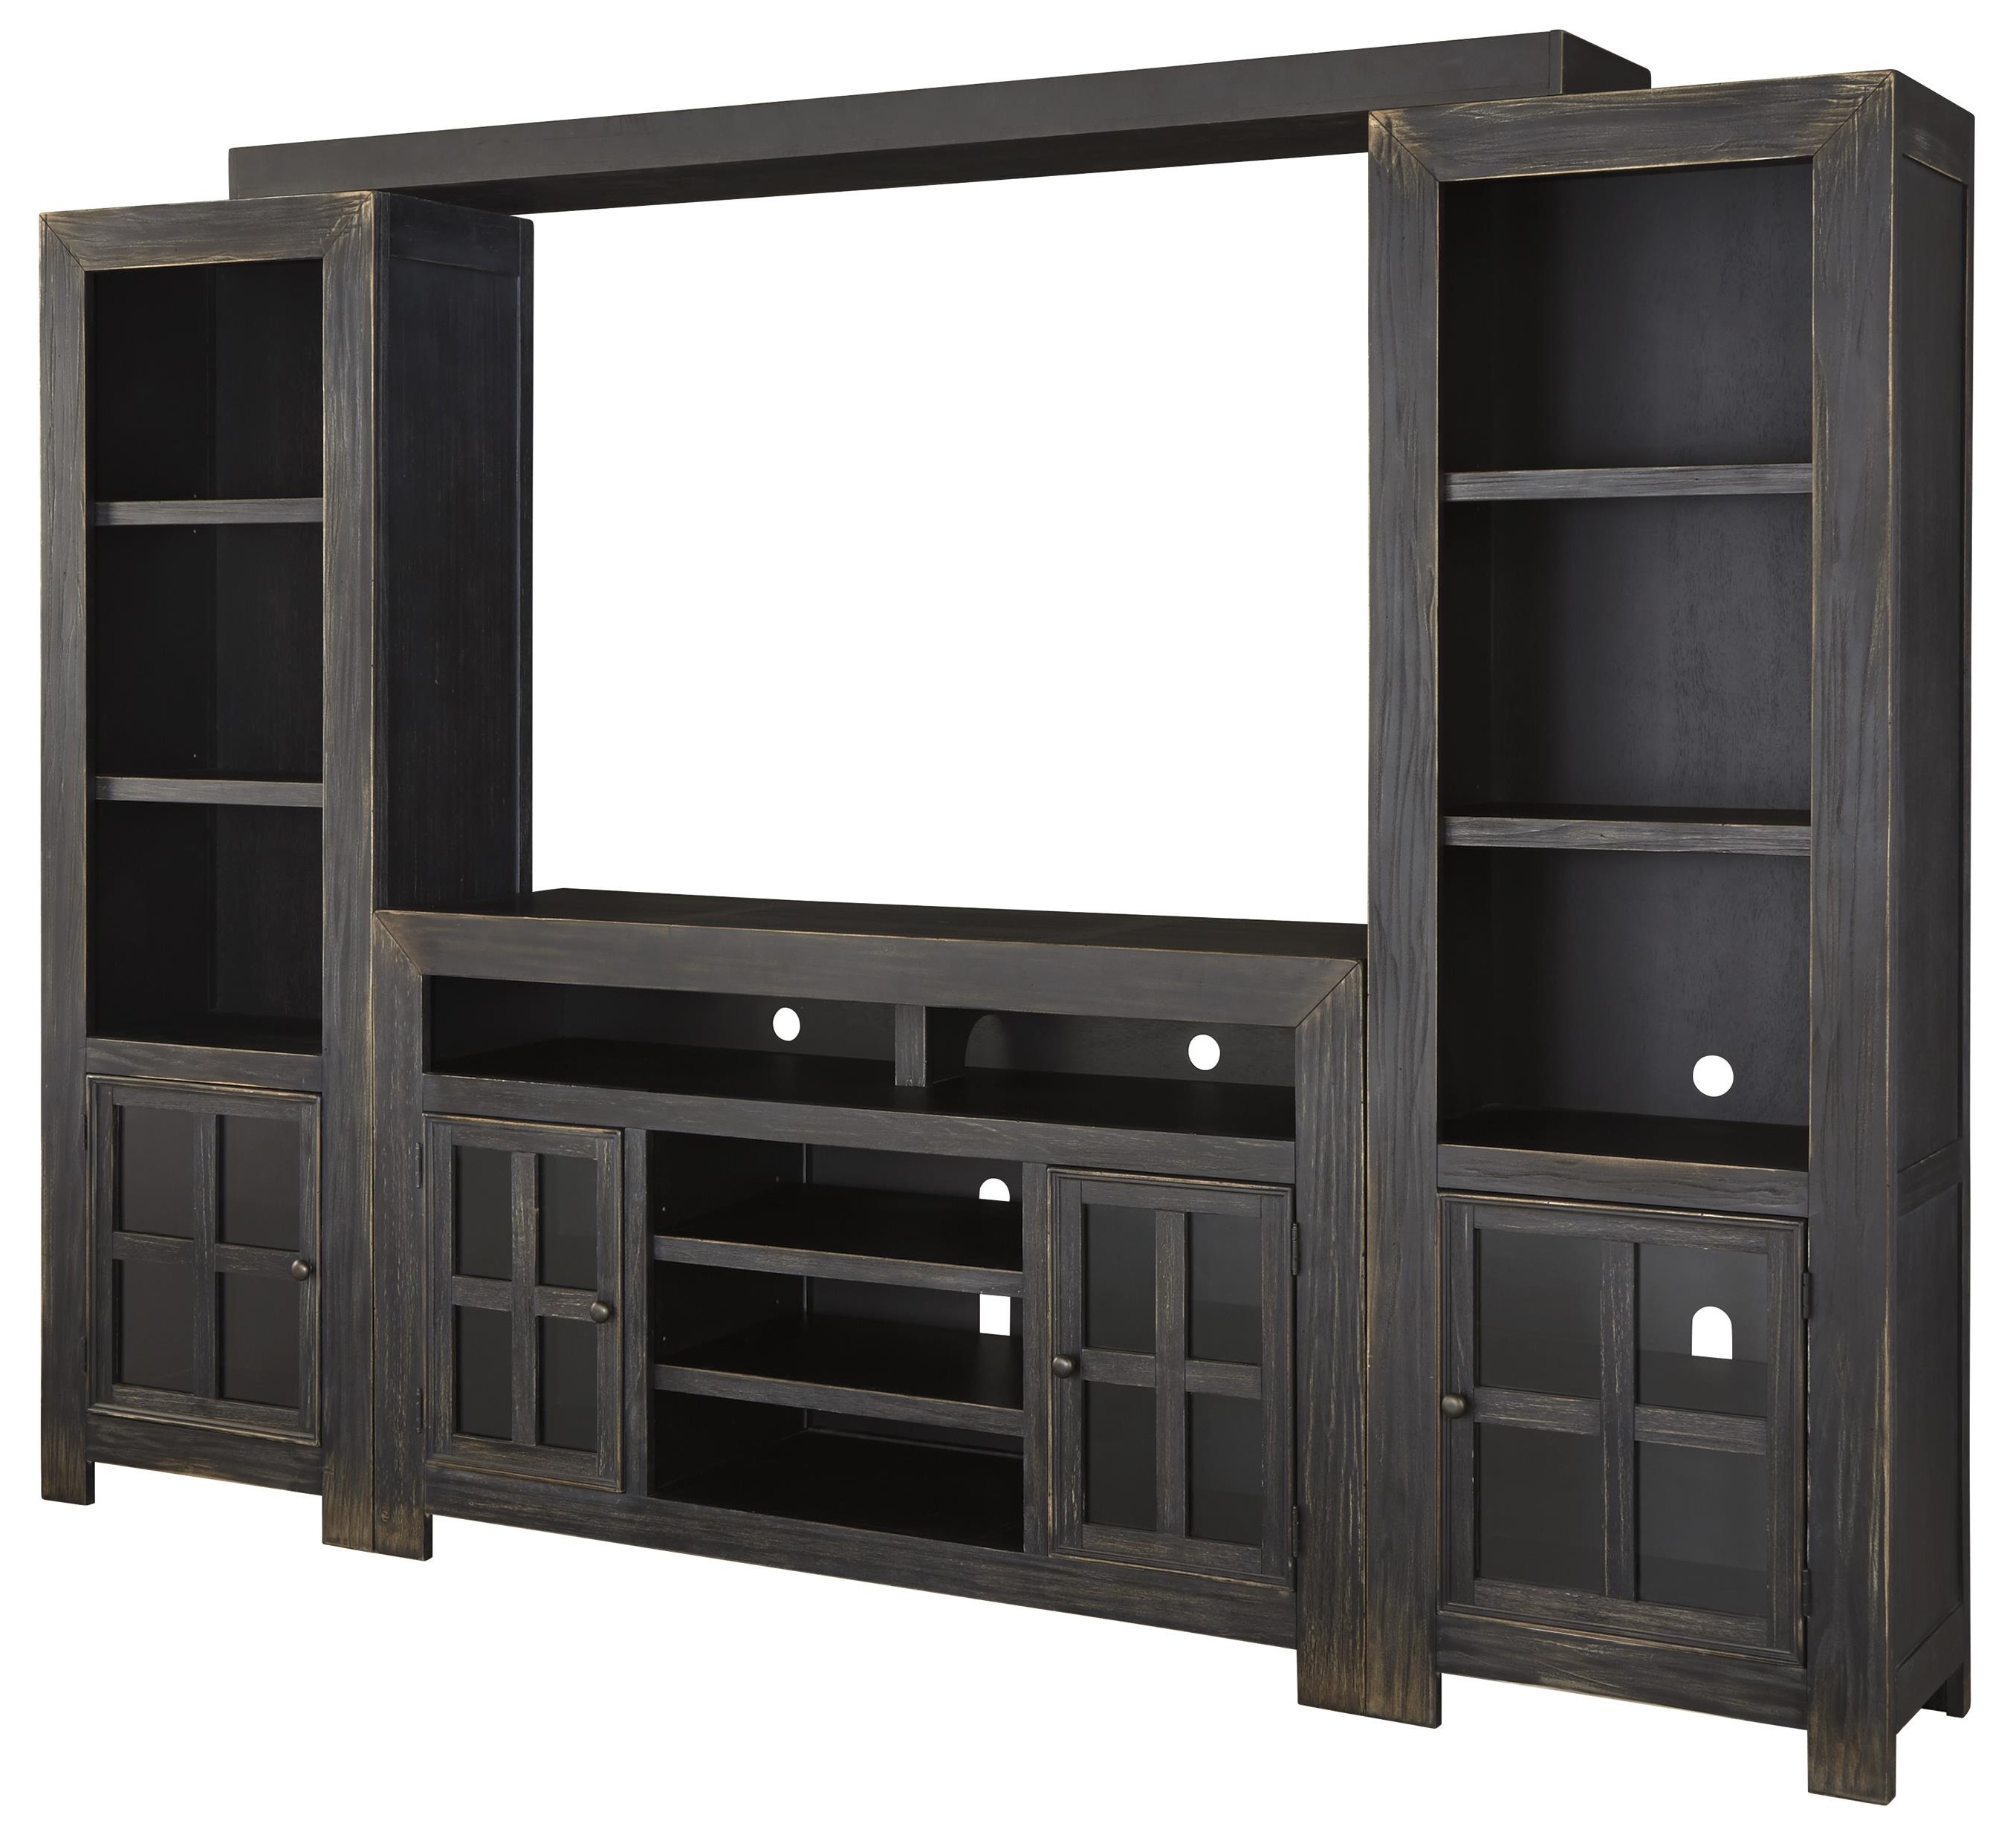 Most Popular Signature Designashley Gavelston Entertainment Wall Unit W Within Tv Entertainment Wall Units (View 18 of 20)